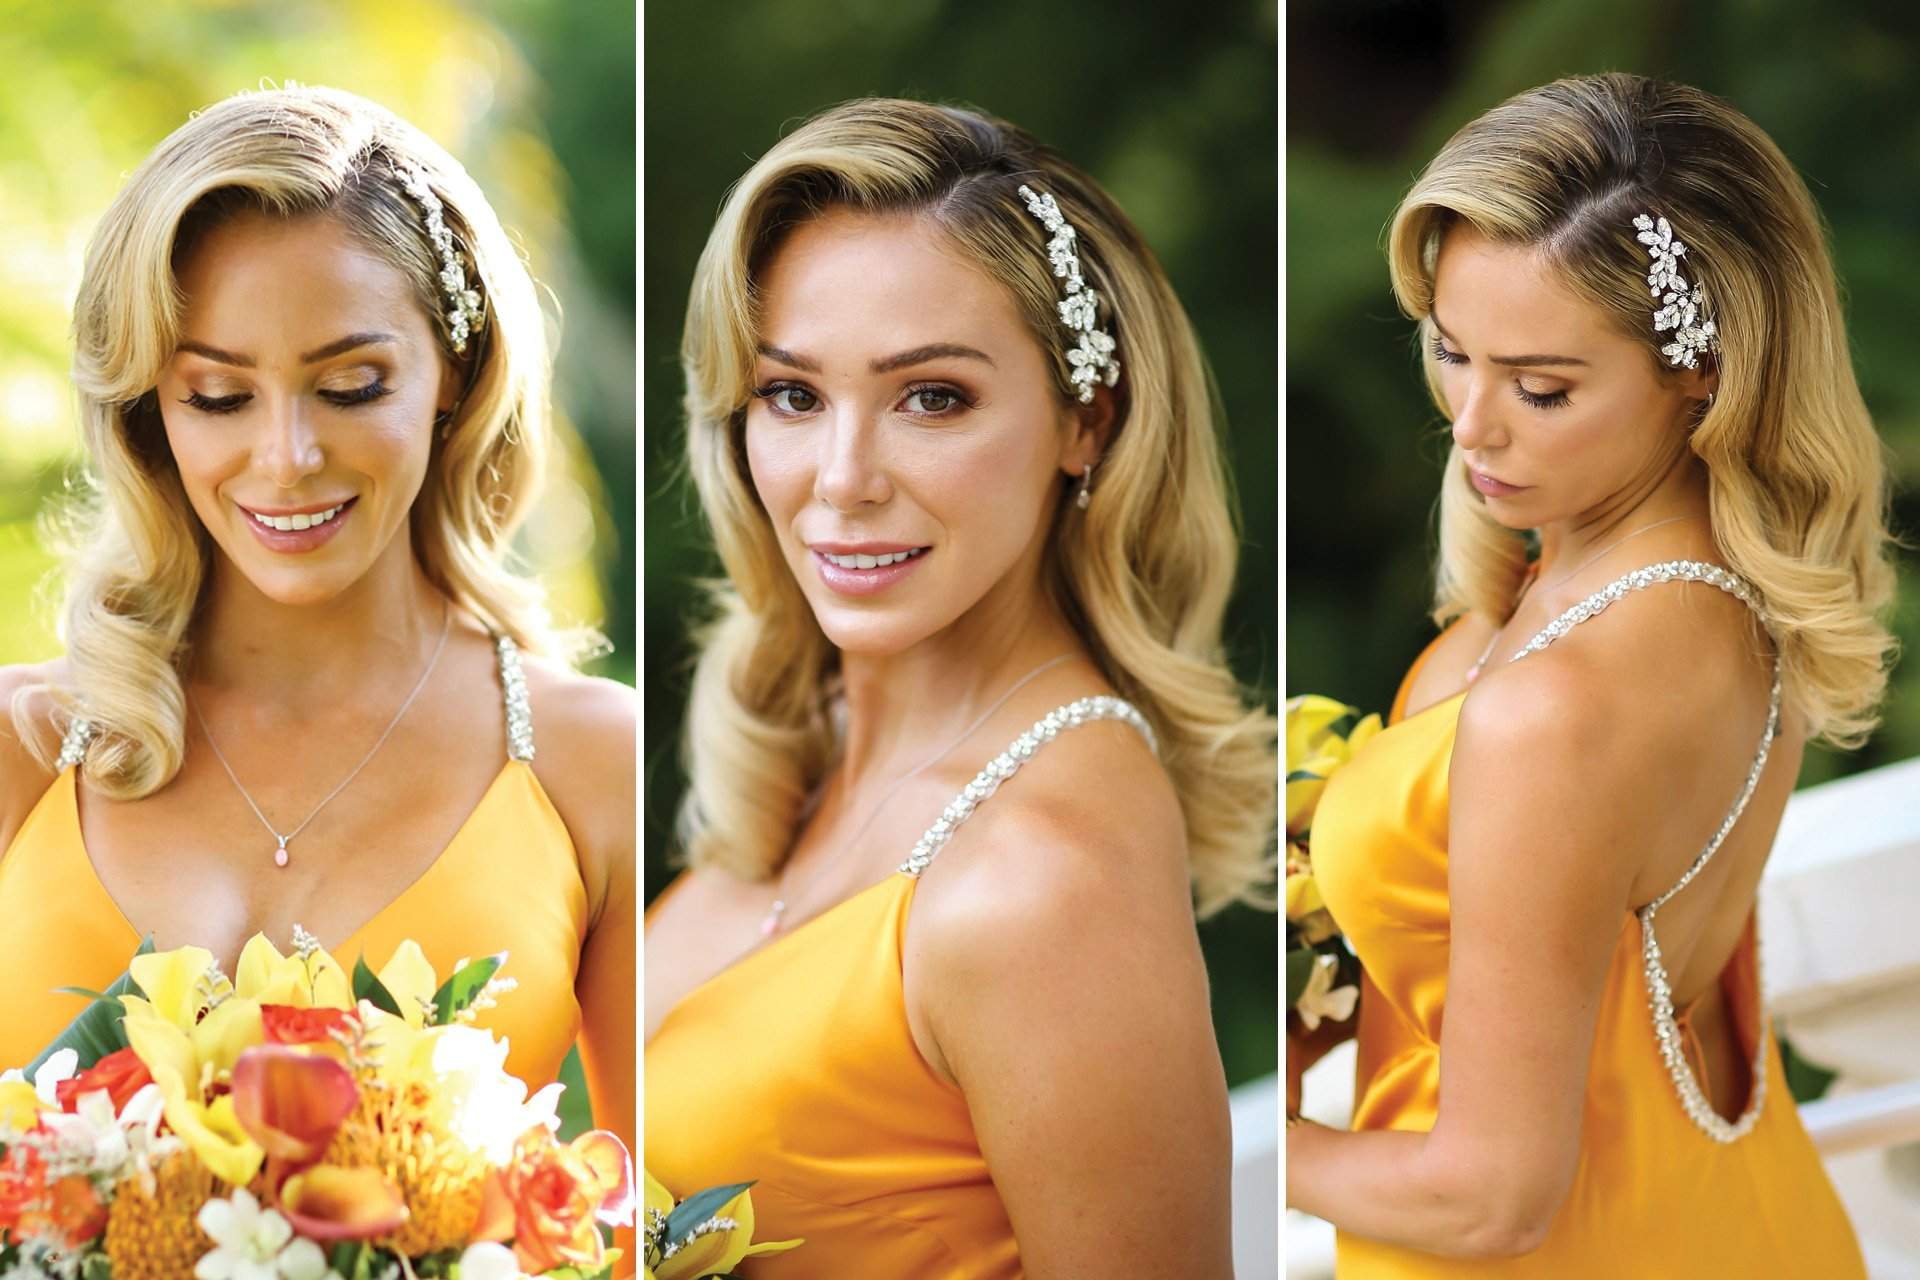 Hair and Makeup Services in the Bahamas